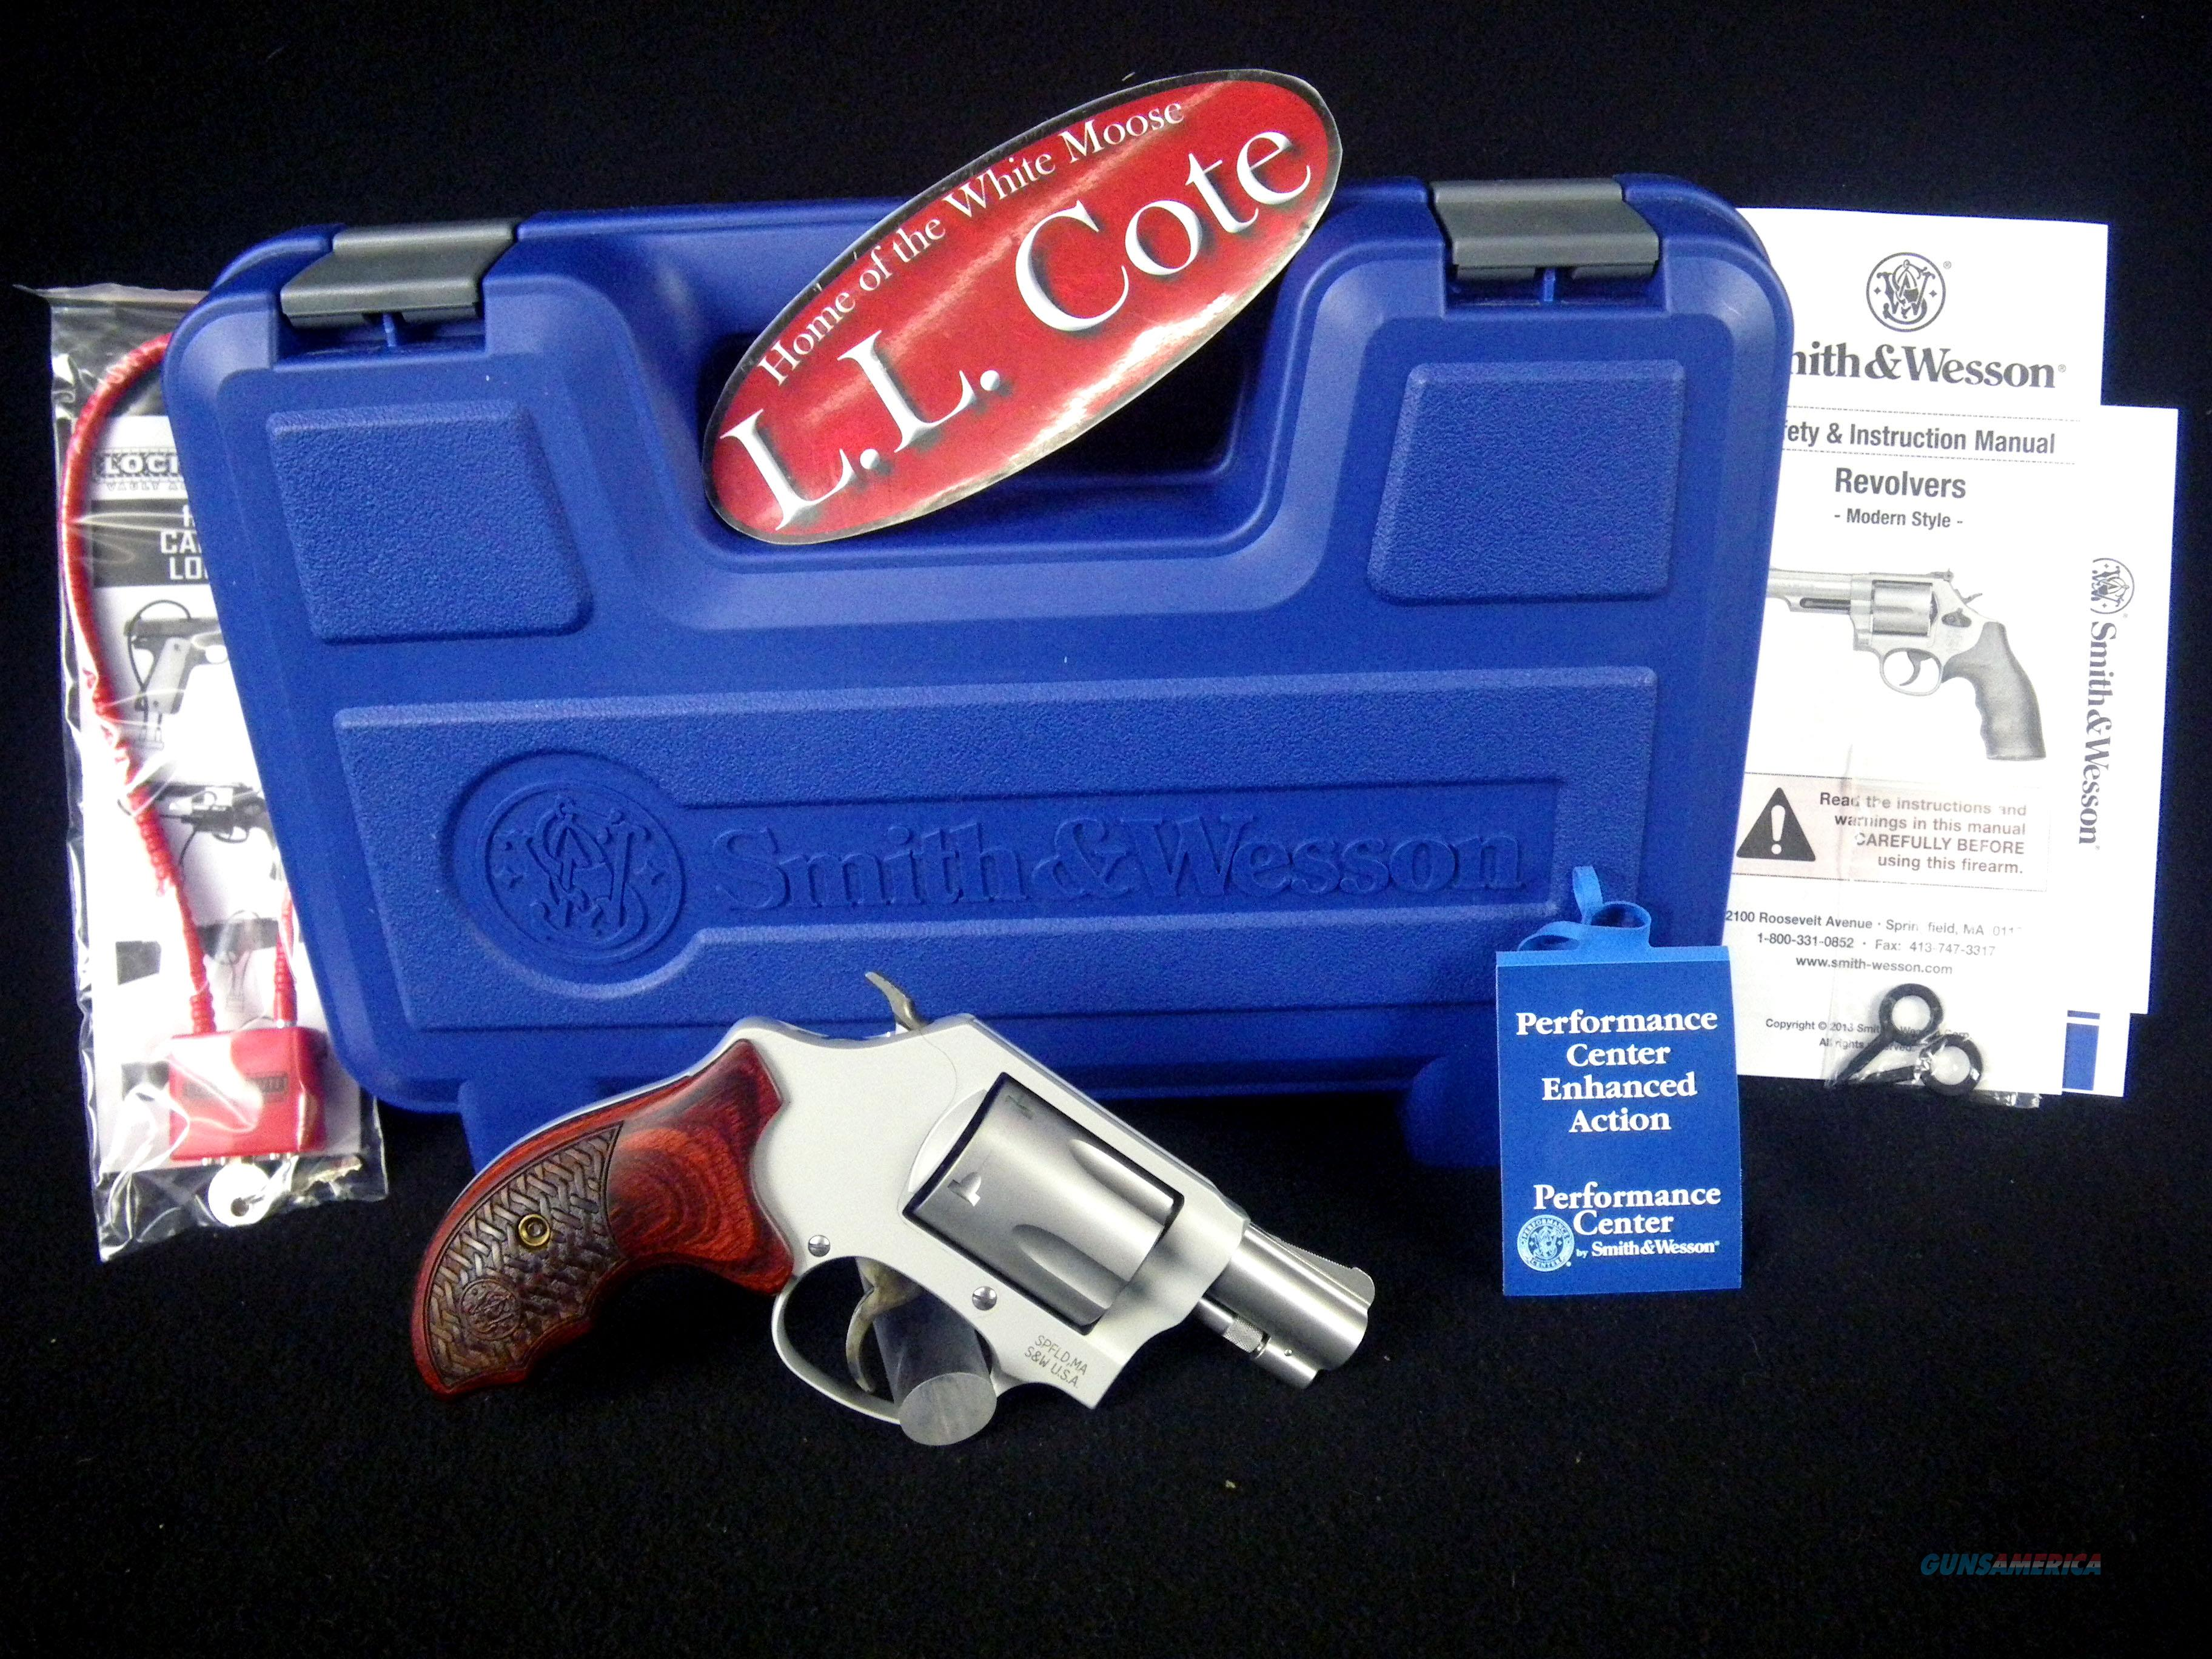 "Smith & Wesson Perf Center 637 38Spl+P 1.875"" NEW 170349  Guns > Pistols > Smith & Wesson Revolvers > Performance Center"